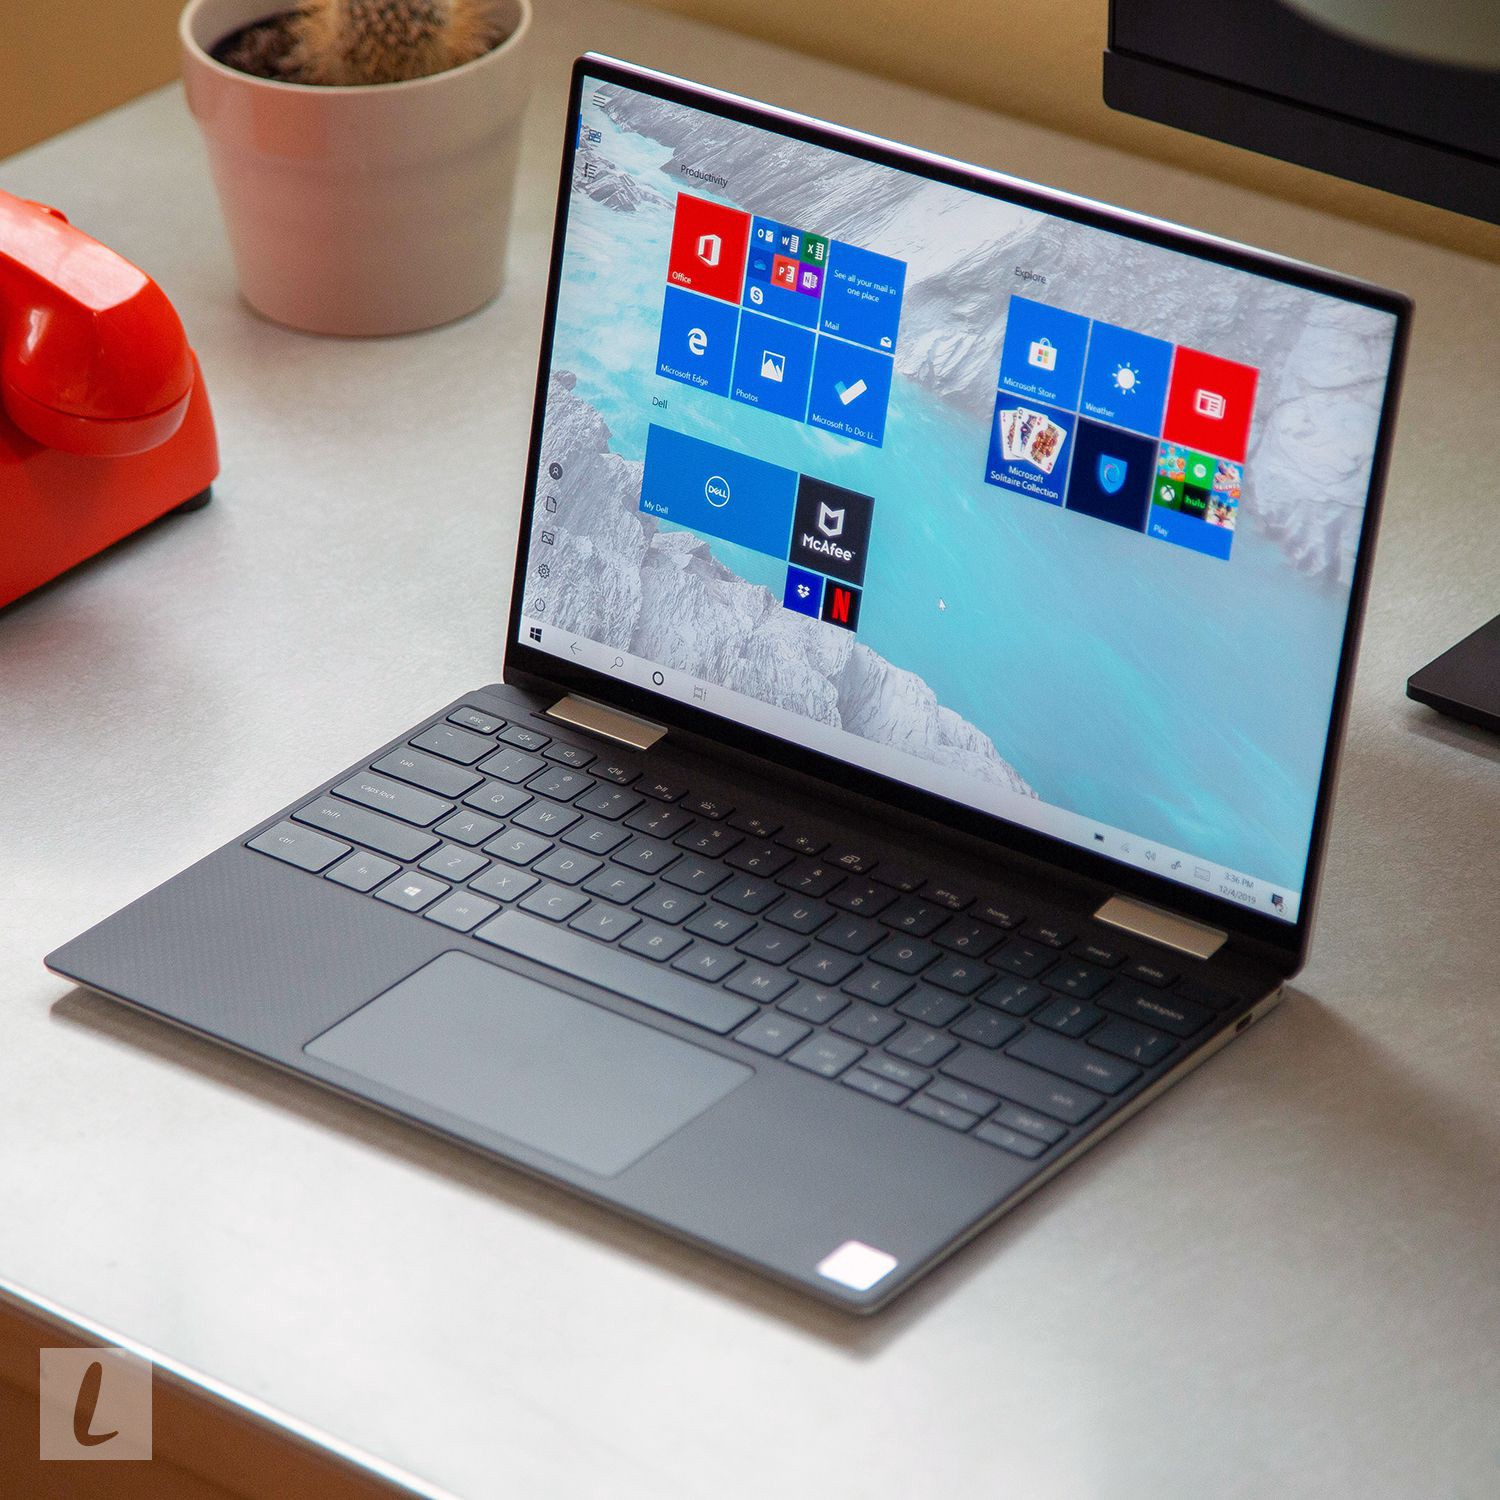 Dell Xps 13 2 In 1 Review The Laptop Of The Future By Sritan Motati Techtalkers Medium